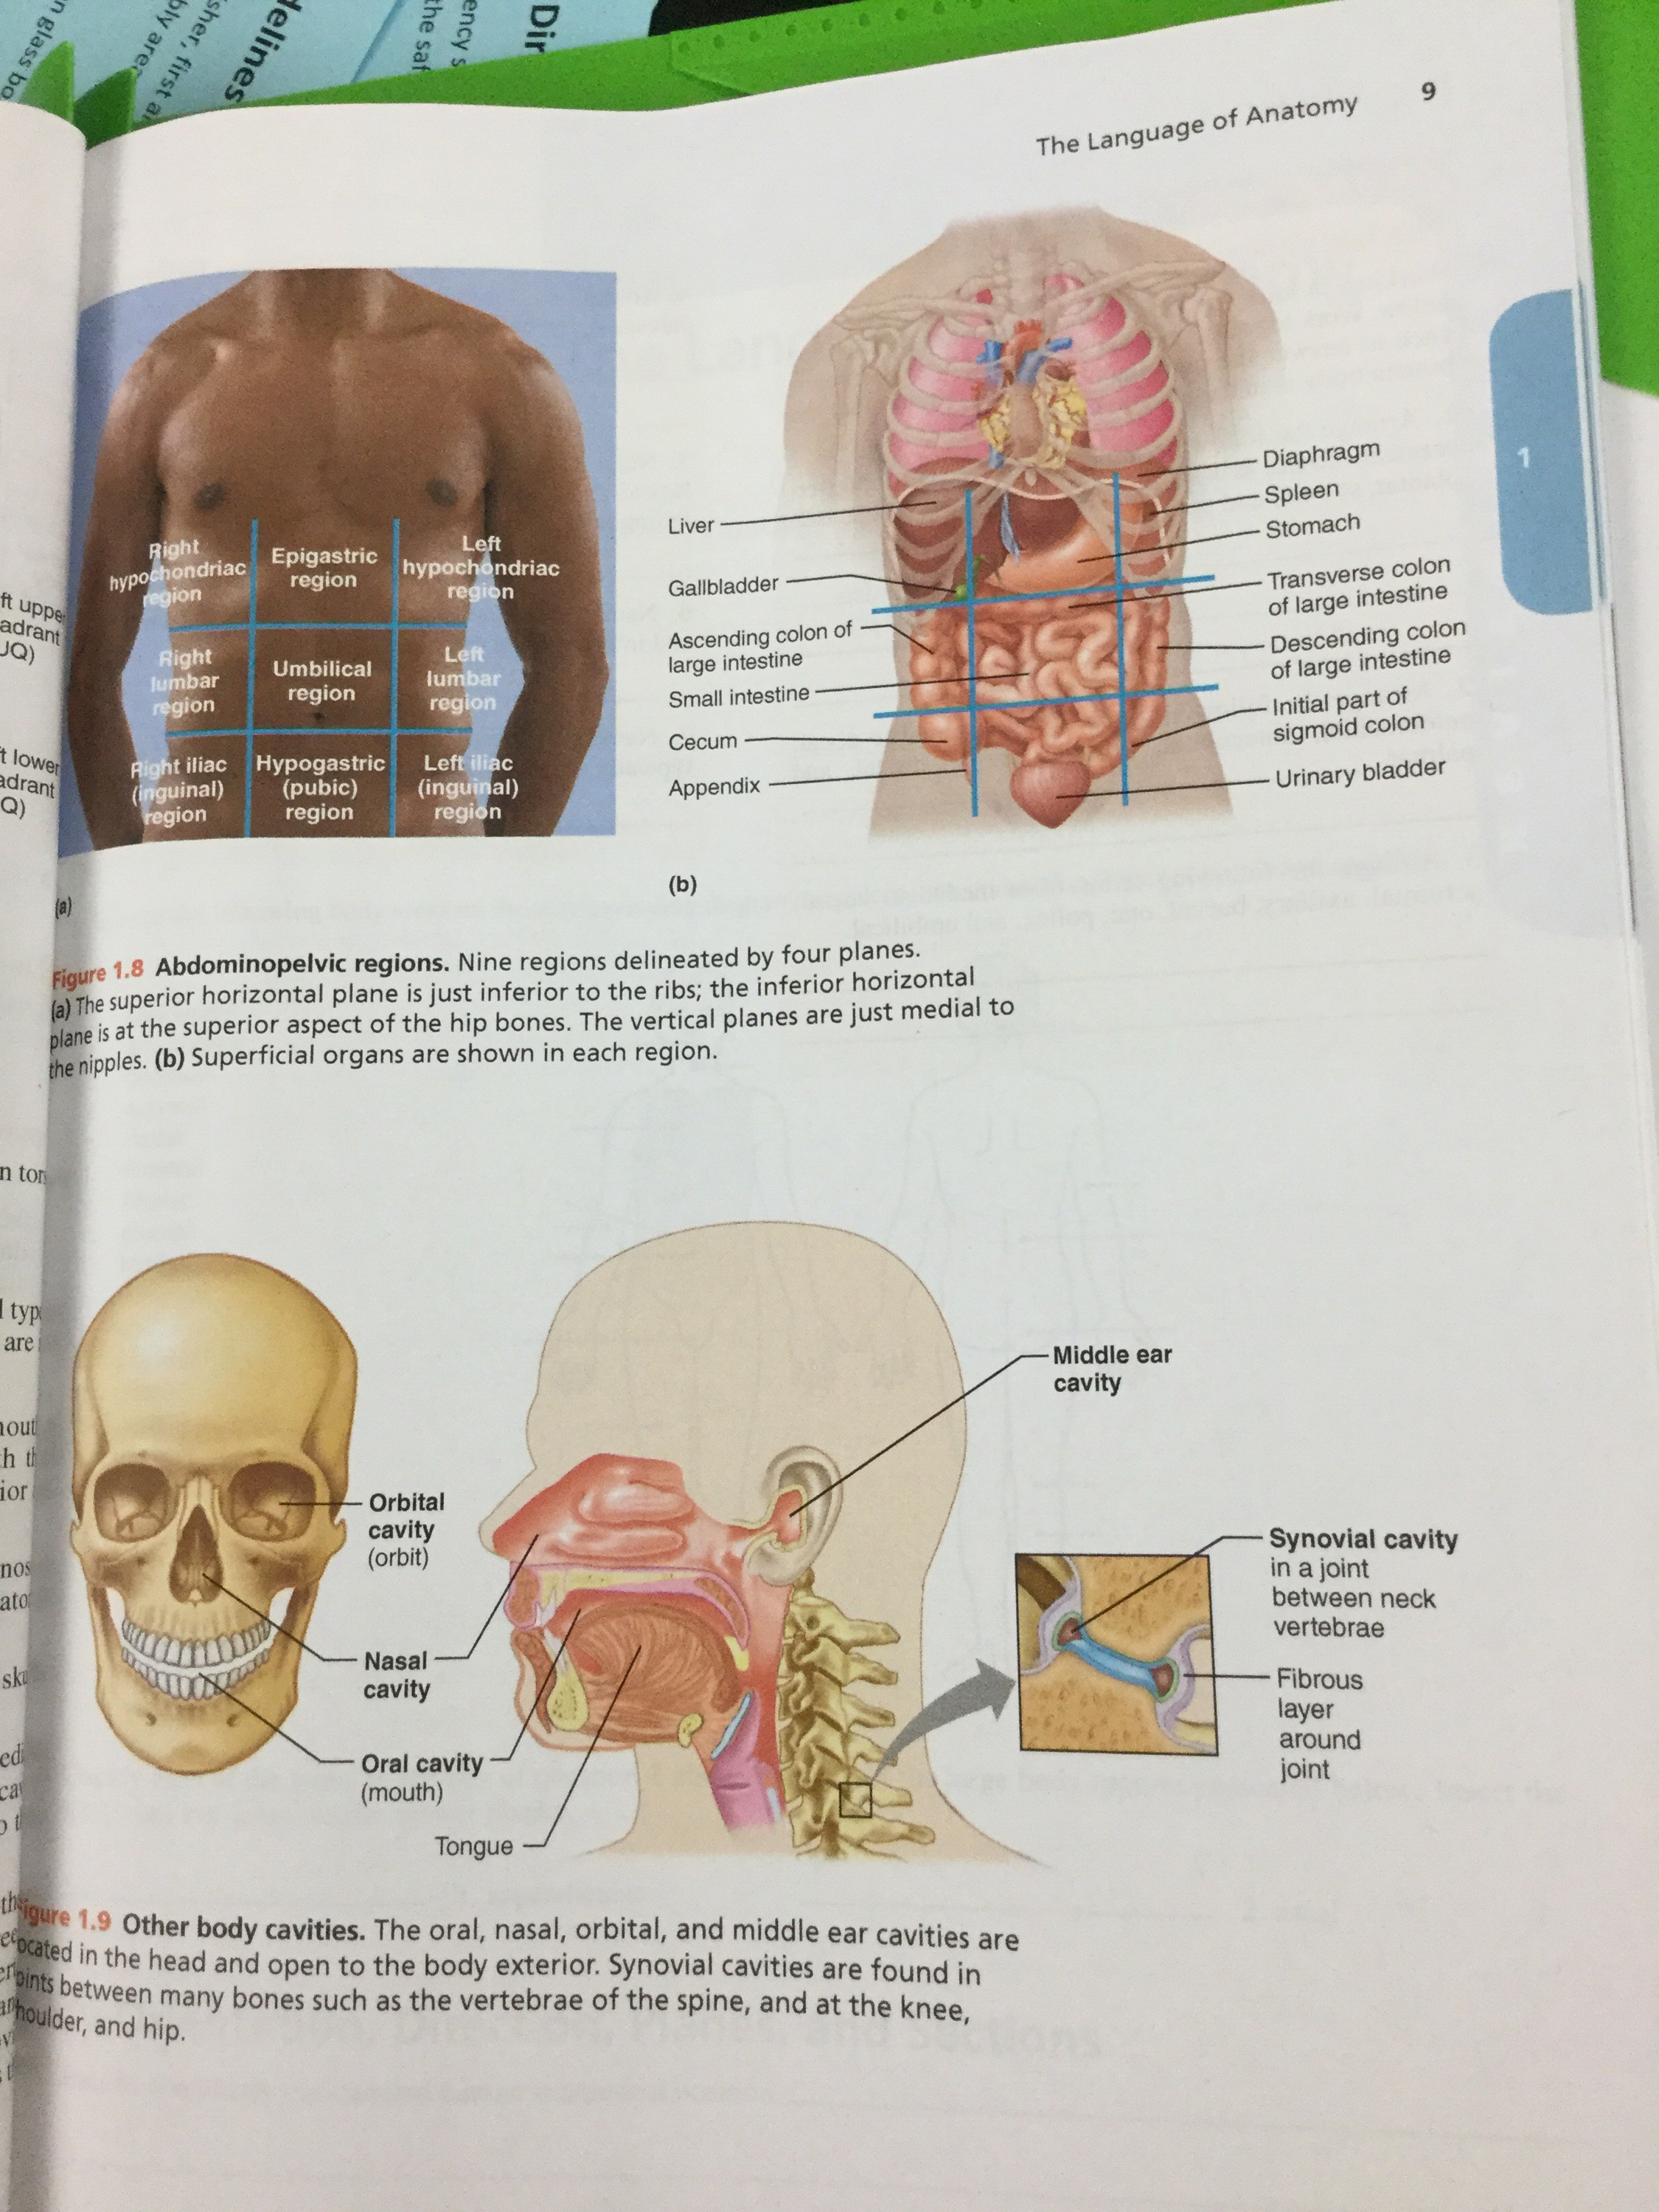 Terminology and Organ Systems – Kluthe Biology